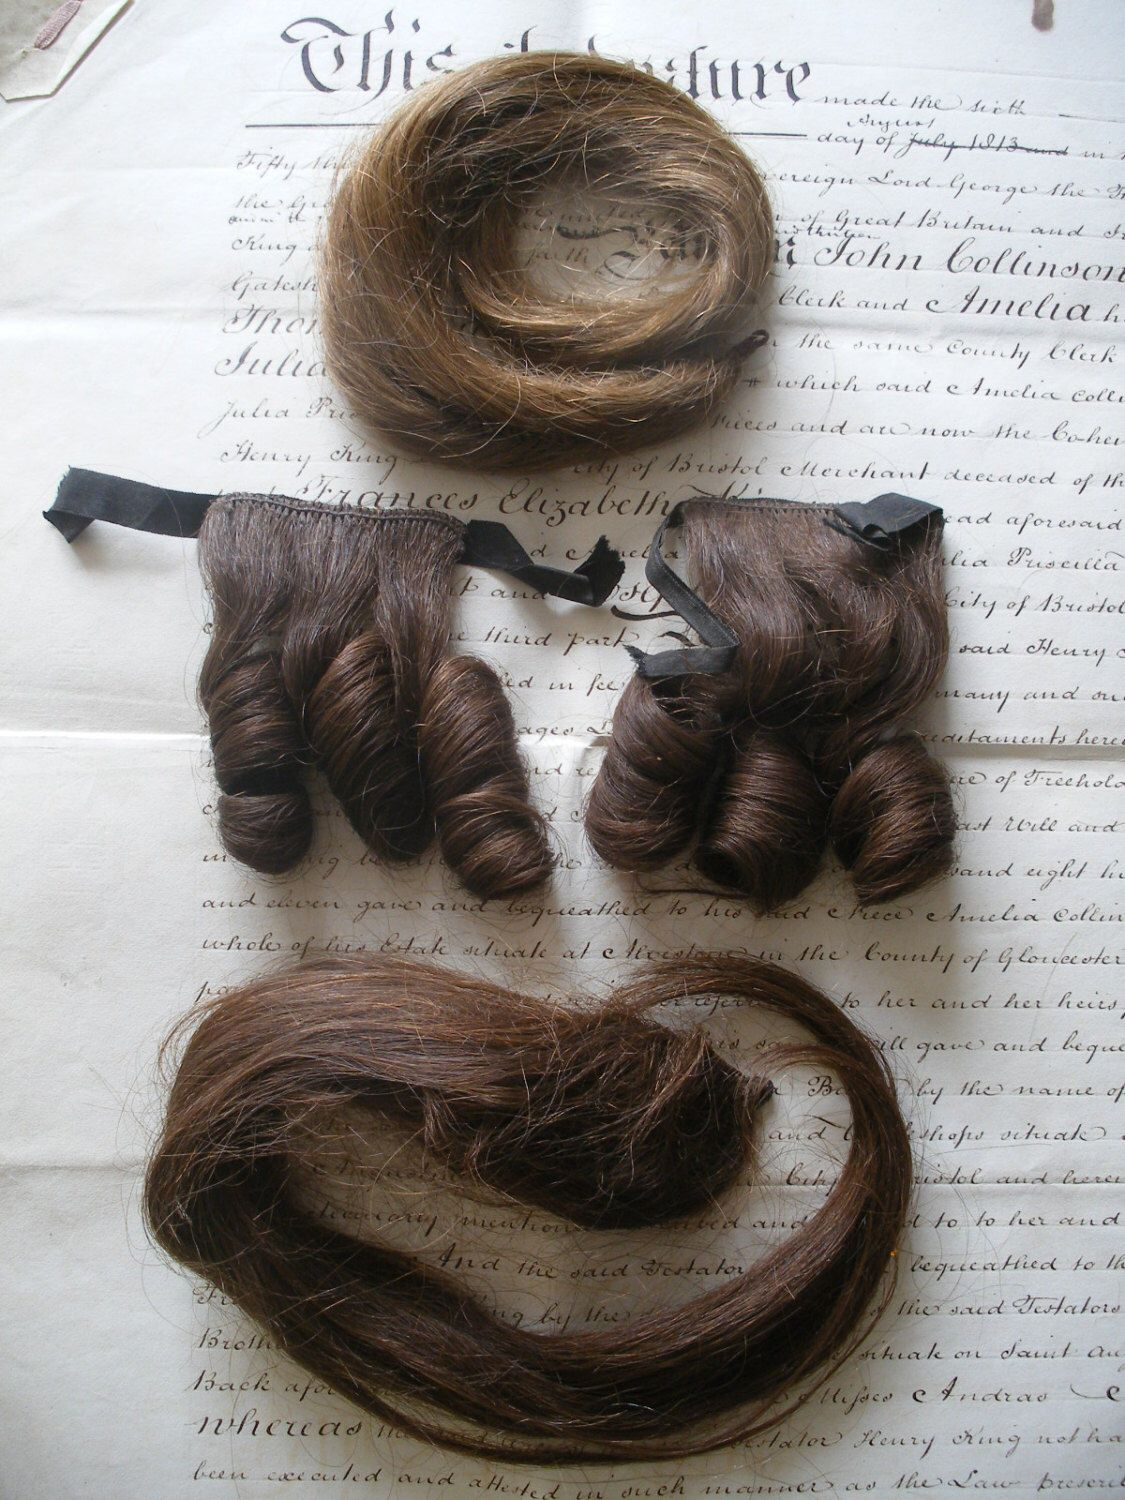 Antique Regency -Victorian hair pieces, ringlets,